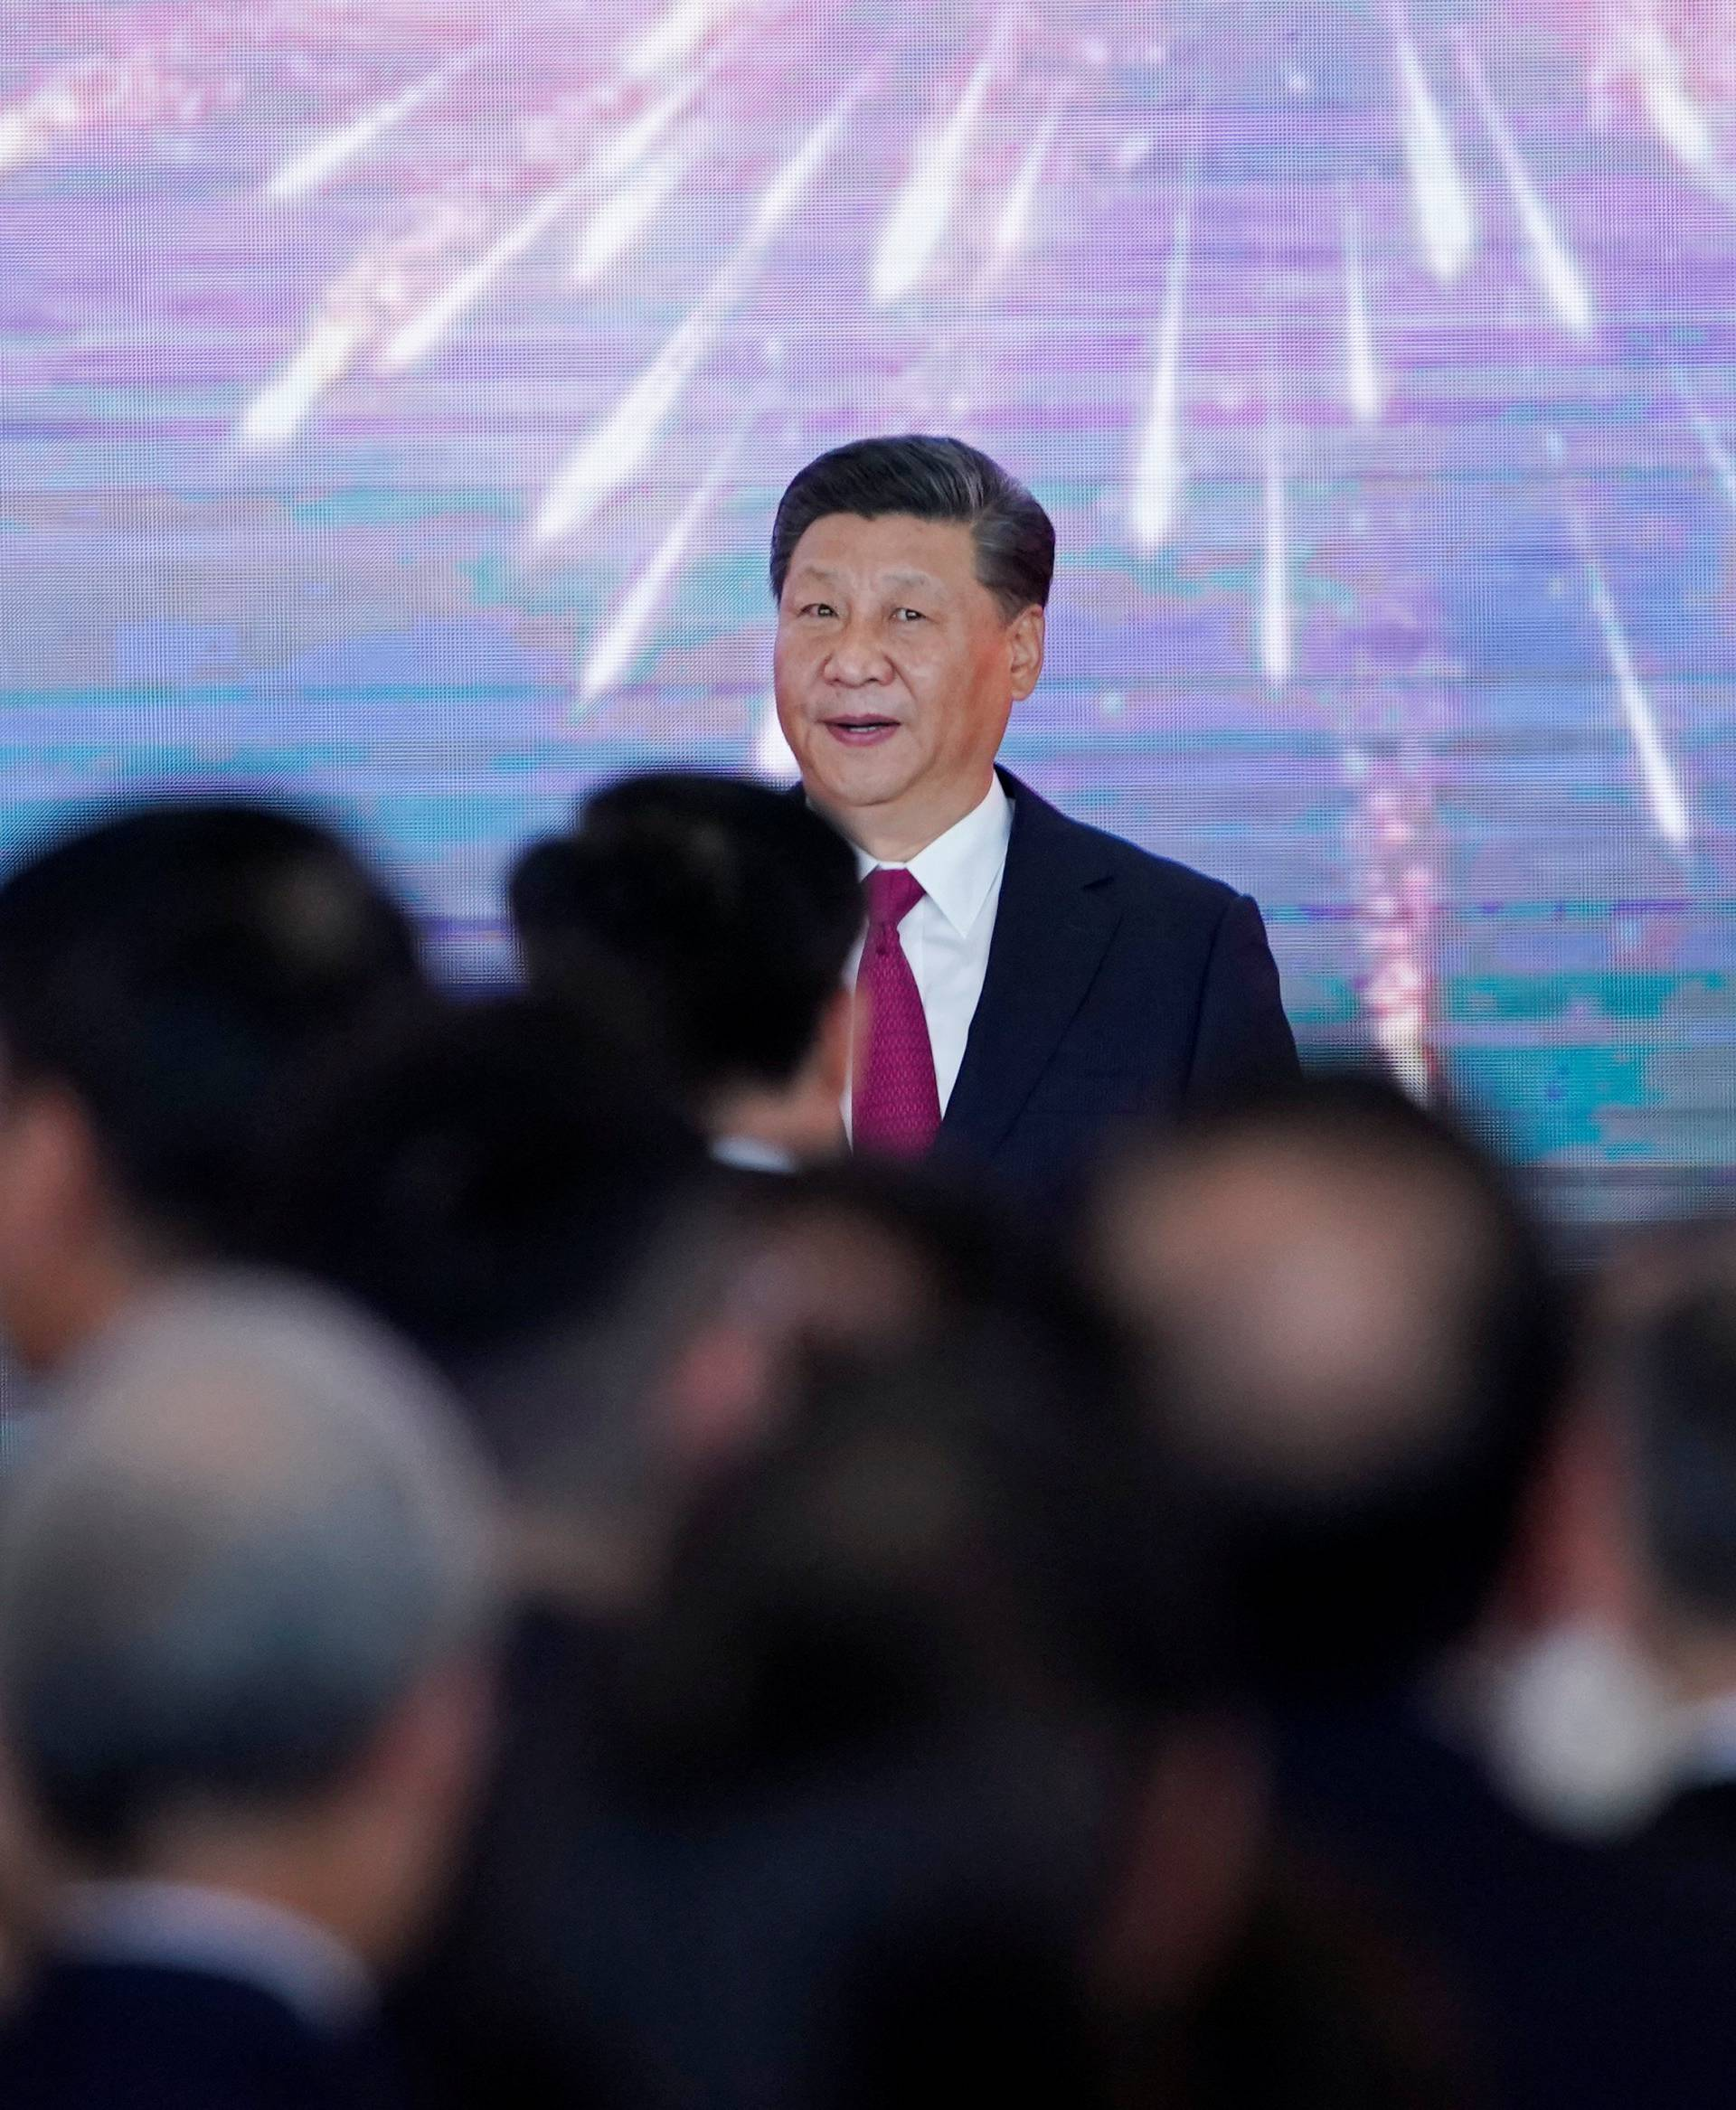 Chinese President Xi attends the opening ceremony of the Hong Kong-Zhuhai-Macau bridge in Zhuhai